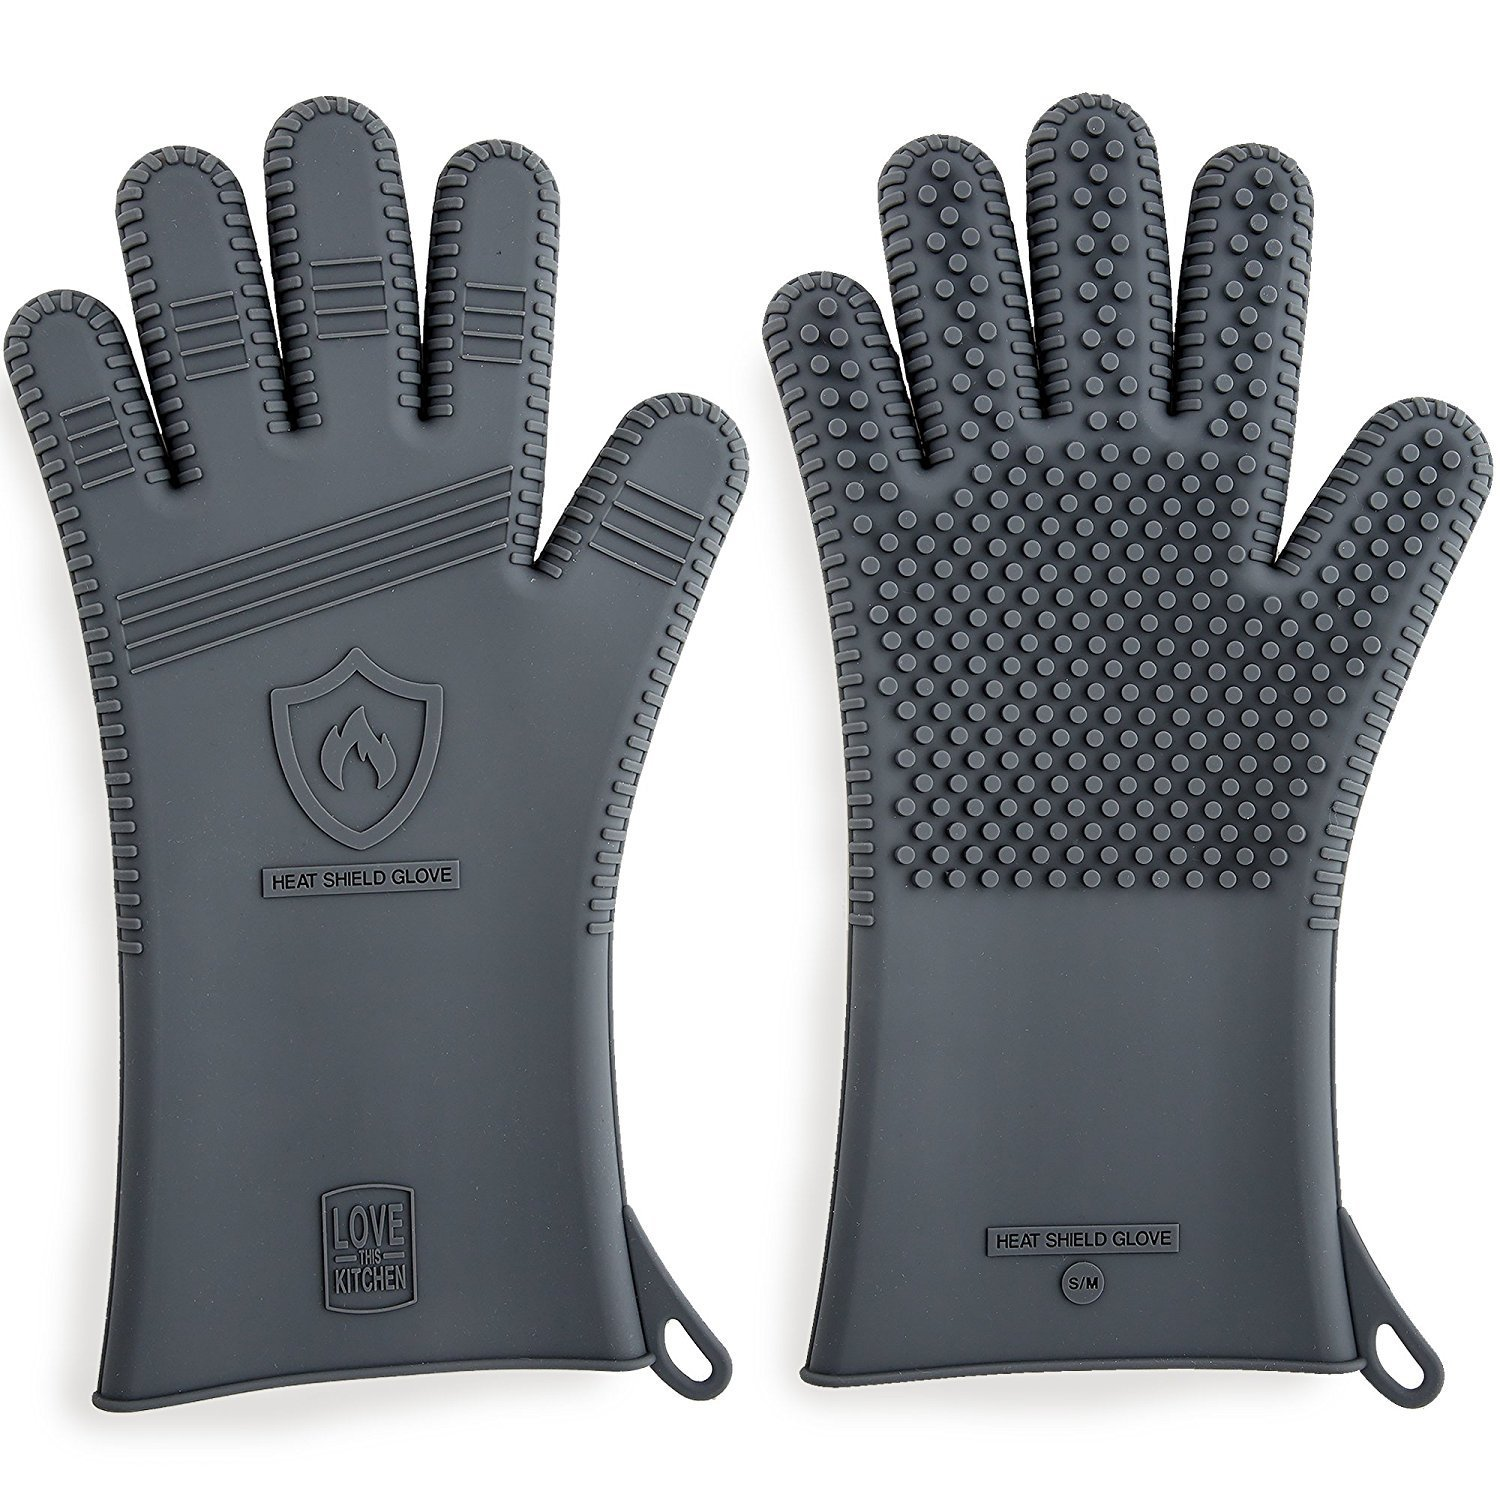 Premium Silicone BBQ Gloves & Grill Gloves in Attractive Gift Box. 13.5 inch Long for Better Protection. These Grilling Gloves are Best For Barbecue & Oven, Heat Resistant to 442 F (Size: S/M, 1 Pair)